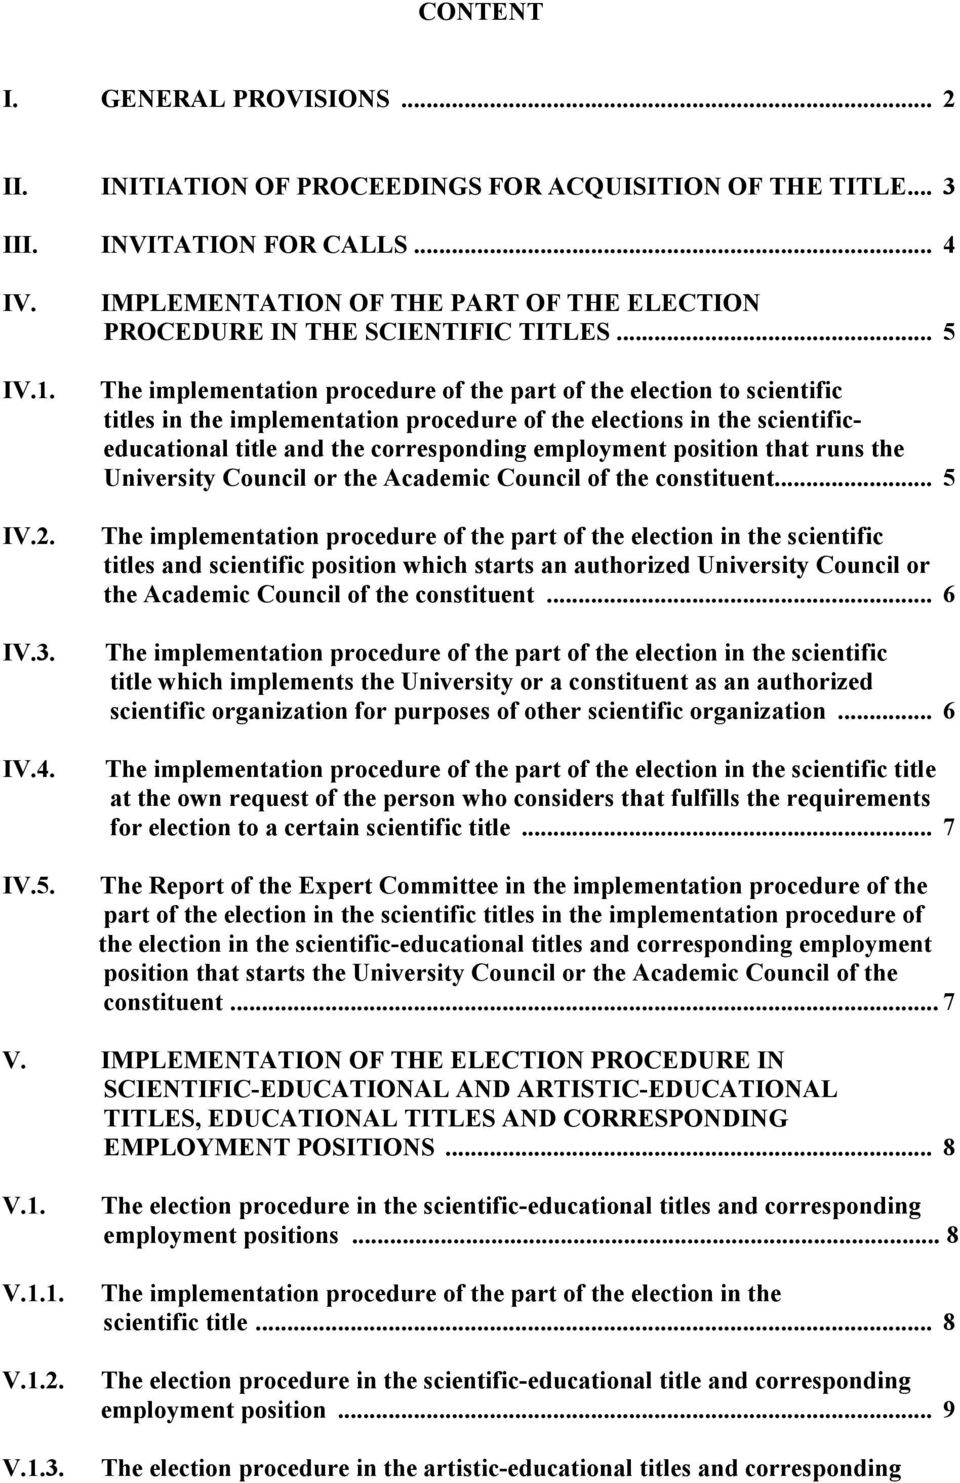 .. 5 The implementation procedure of the part of the election to scientific titles in the implementation procedure of the elections in the scientificeducational title and the corresponding employment